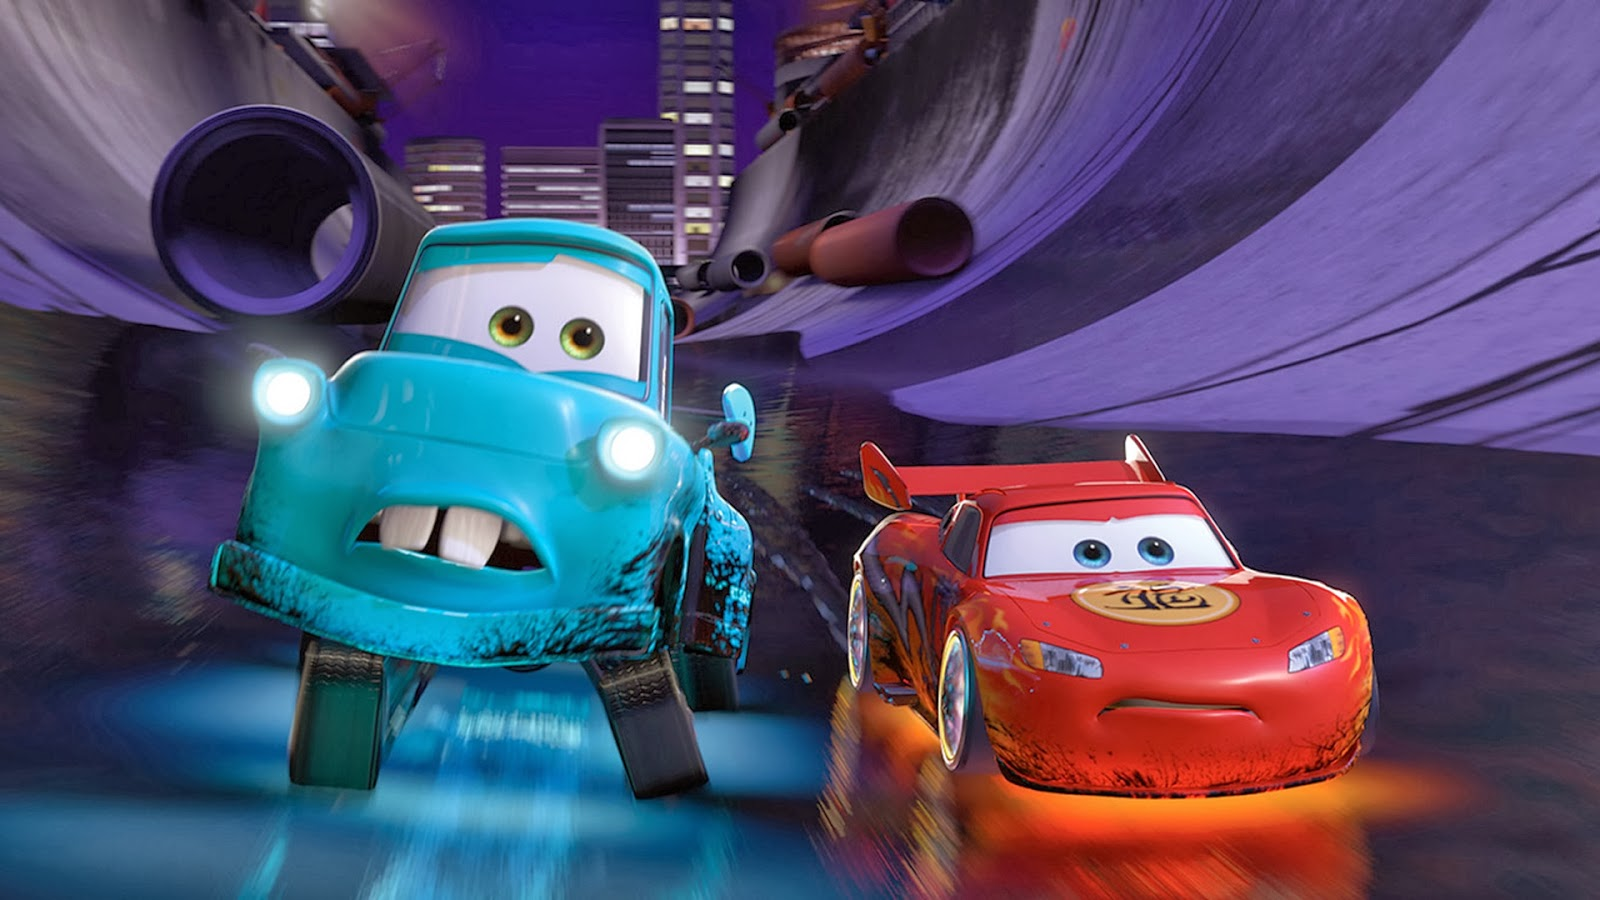 Amazing Wallpaper Movie The Cars - Cars+2+Lightning+McQueen+and+Mater+Wallpaper  HD_845651.jpg